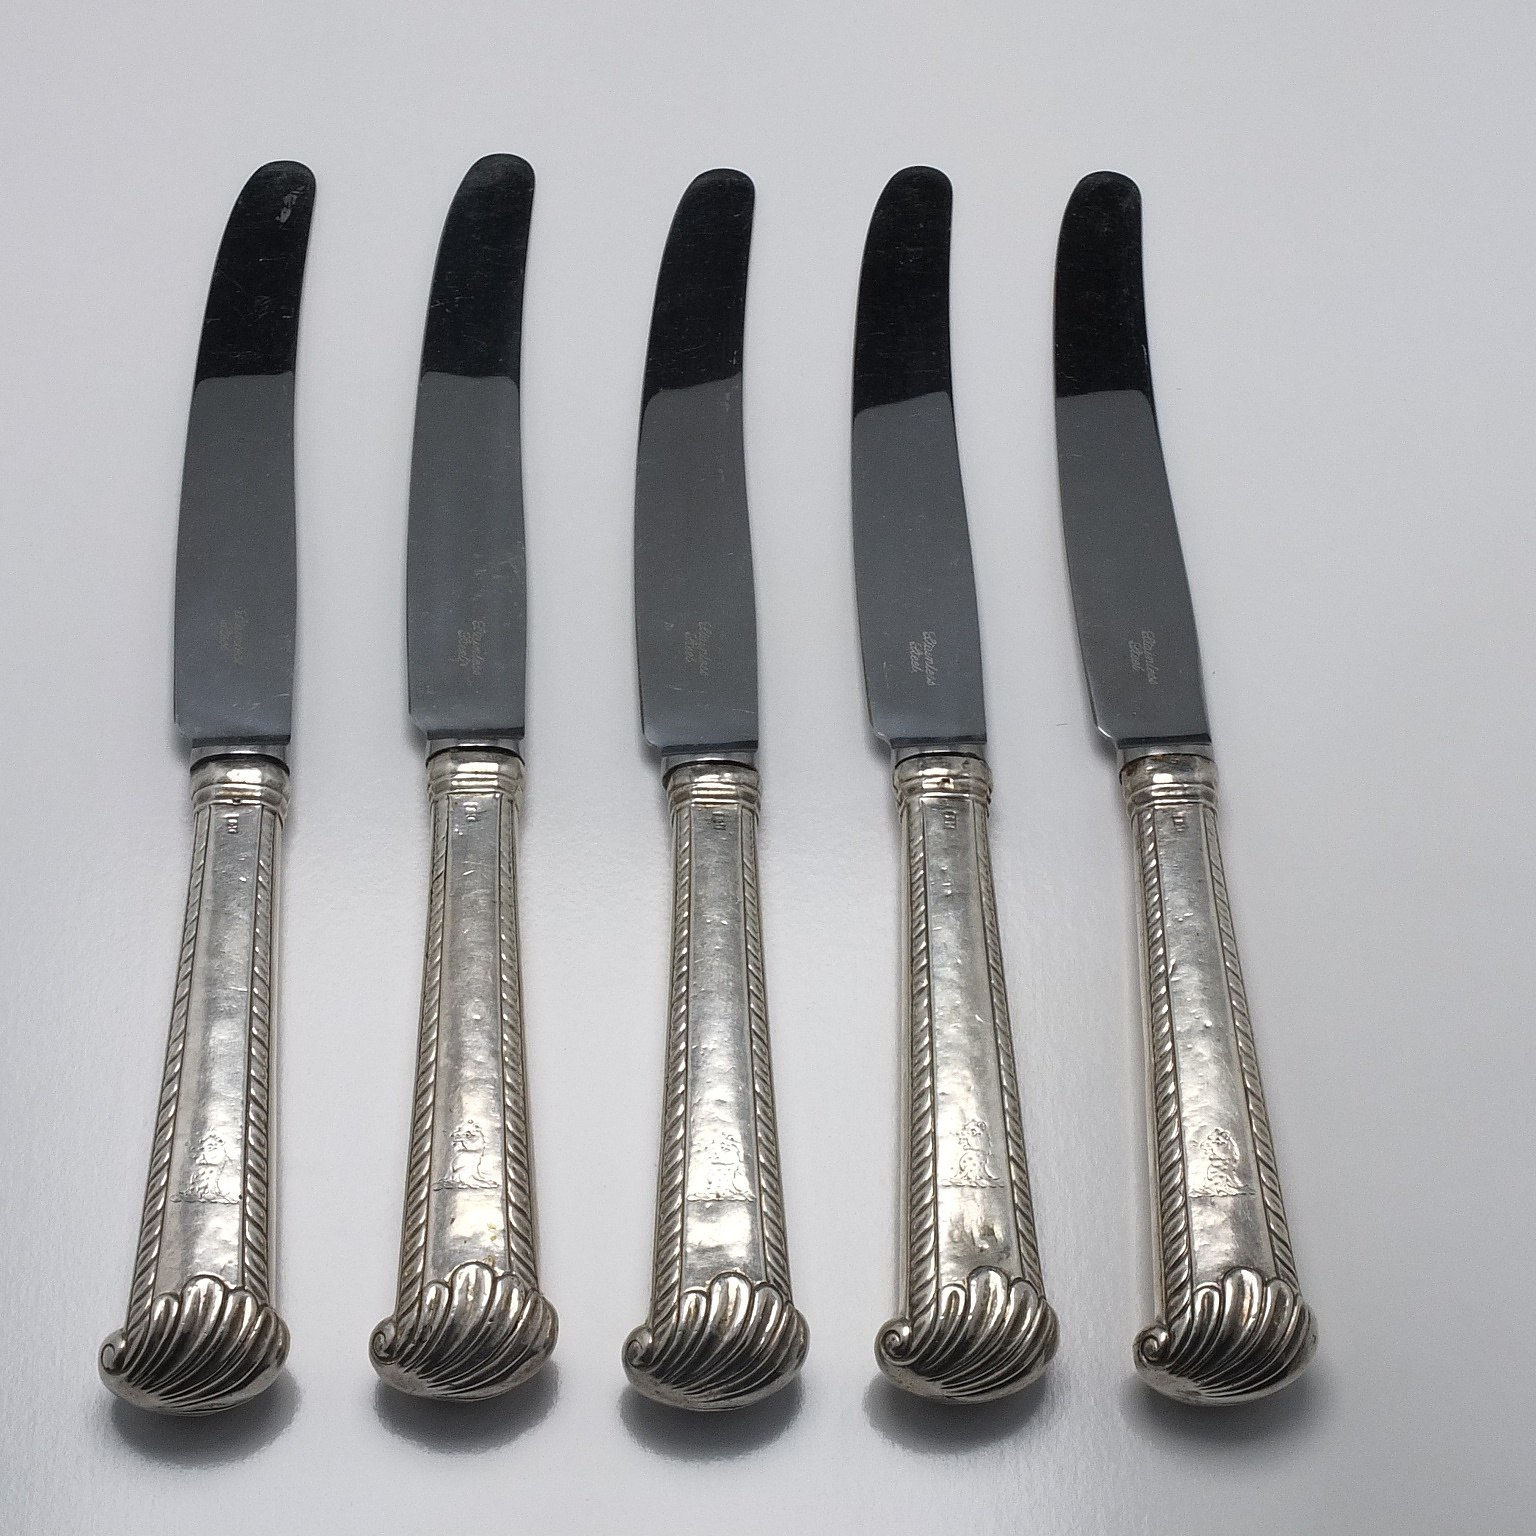 'Five Crested Sterling Silver Handled Mains Knives'